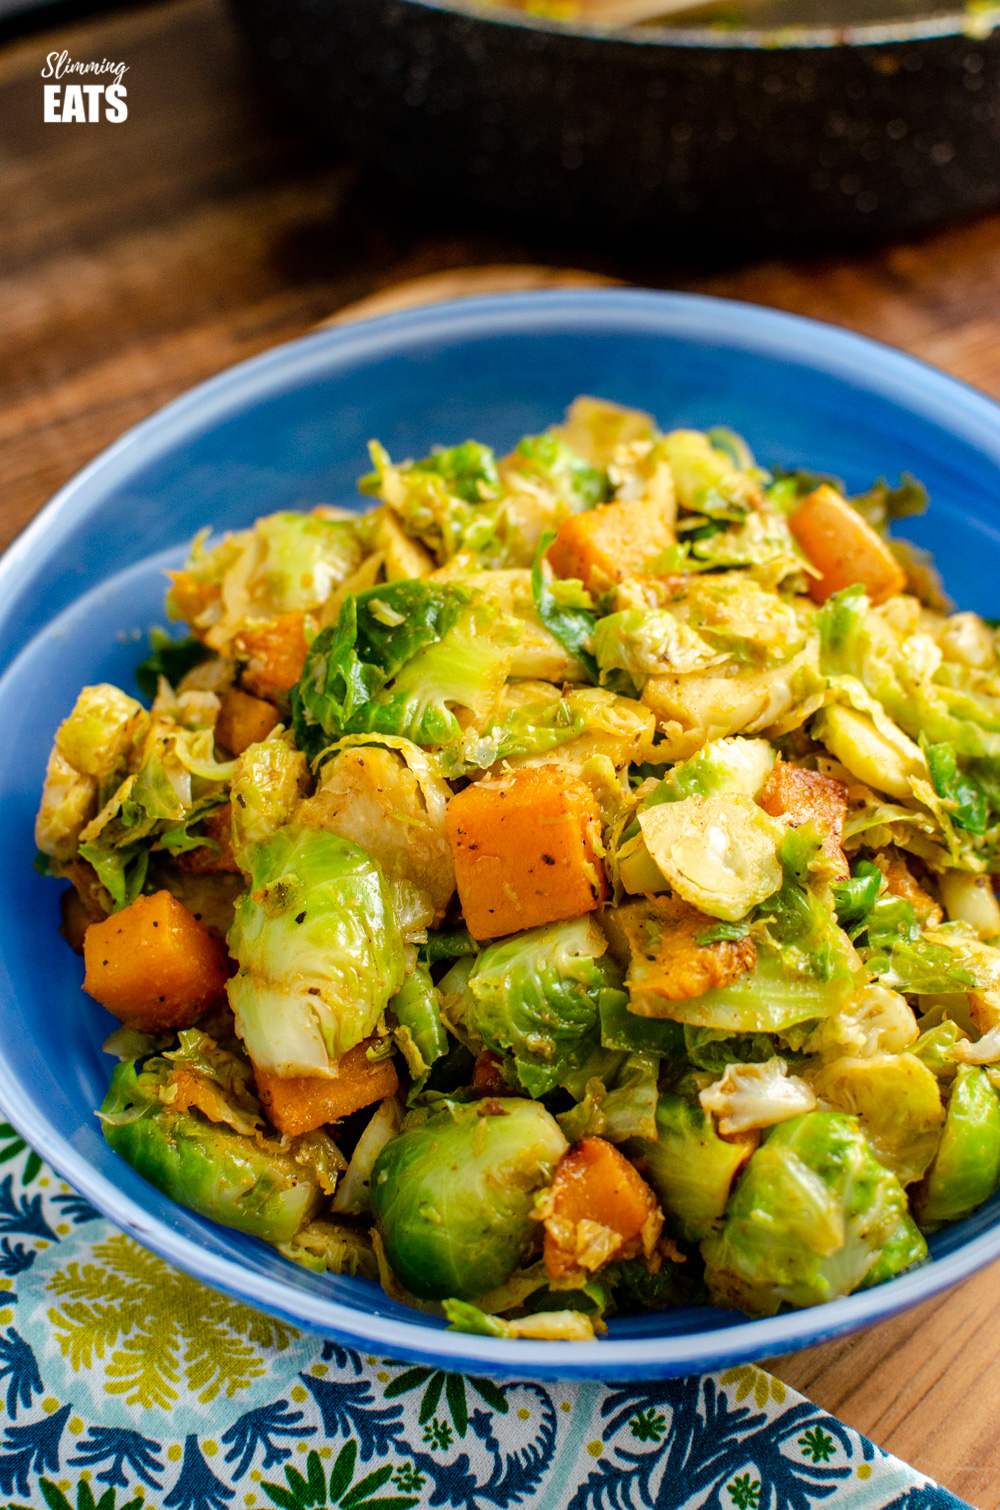 Brussels sprouts and butternut squash in blue bowl